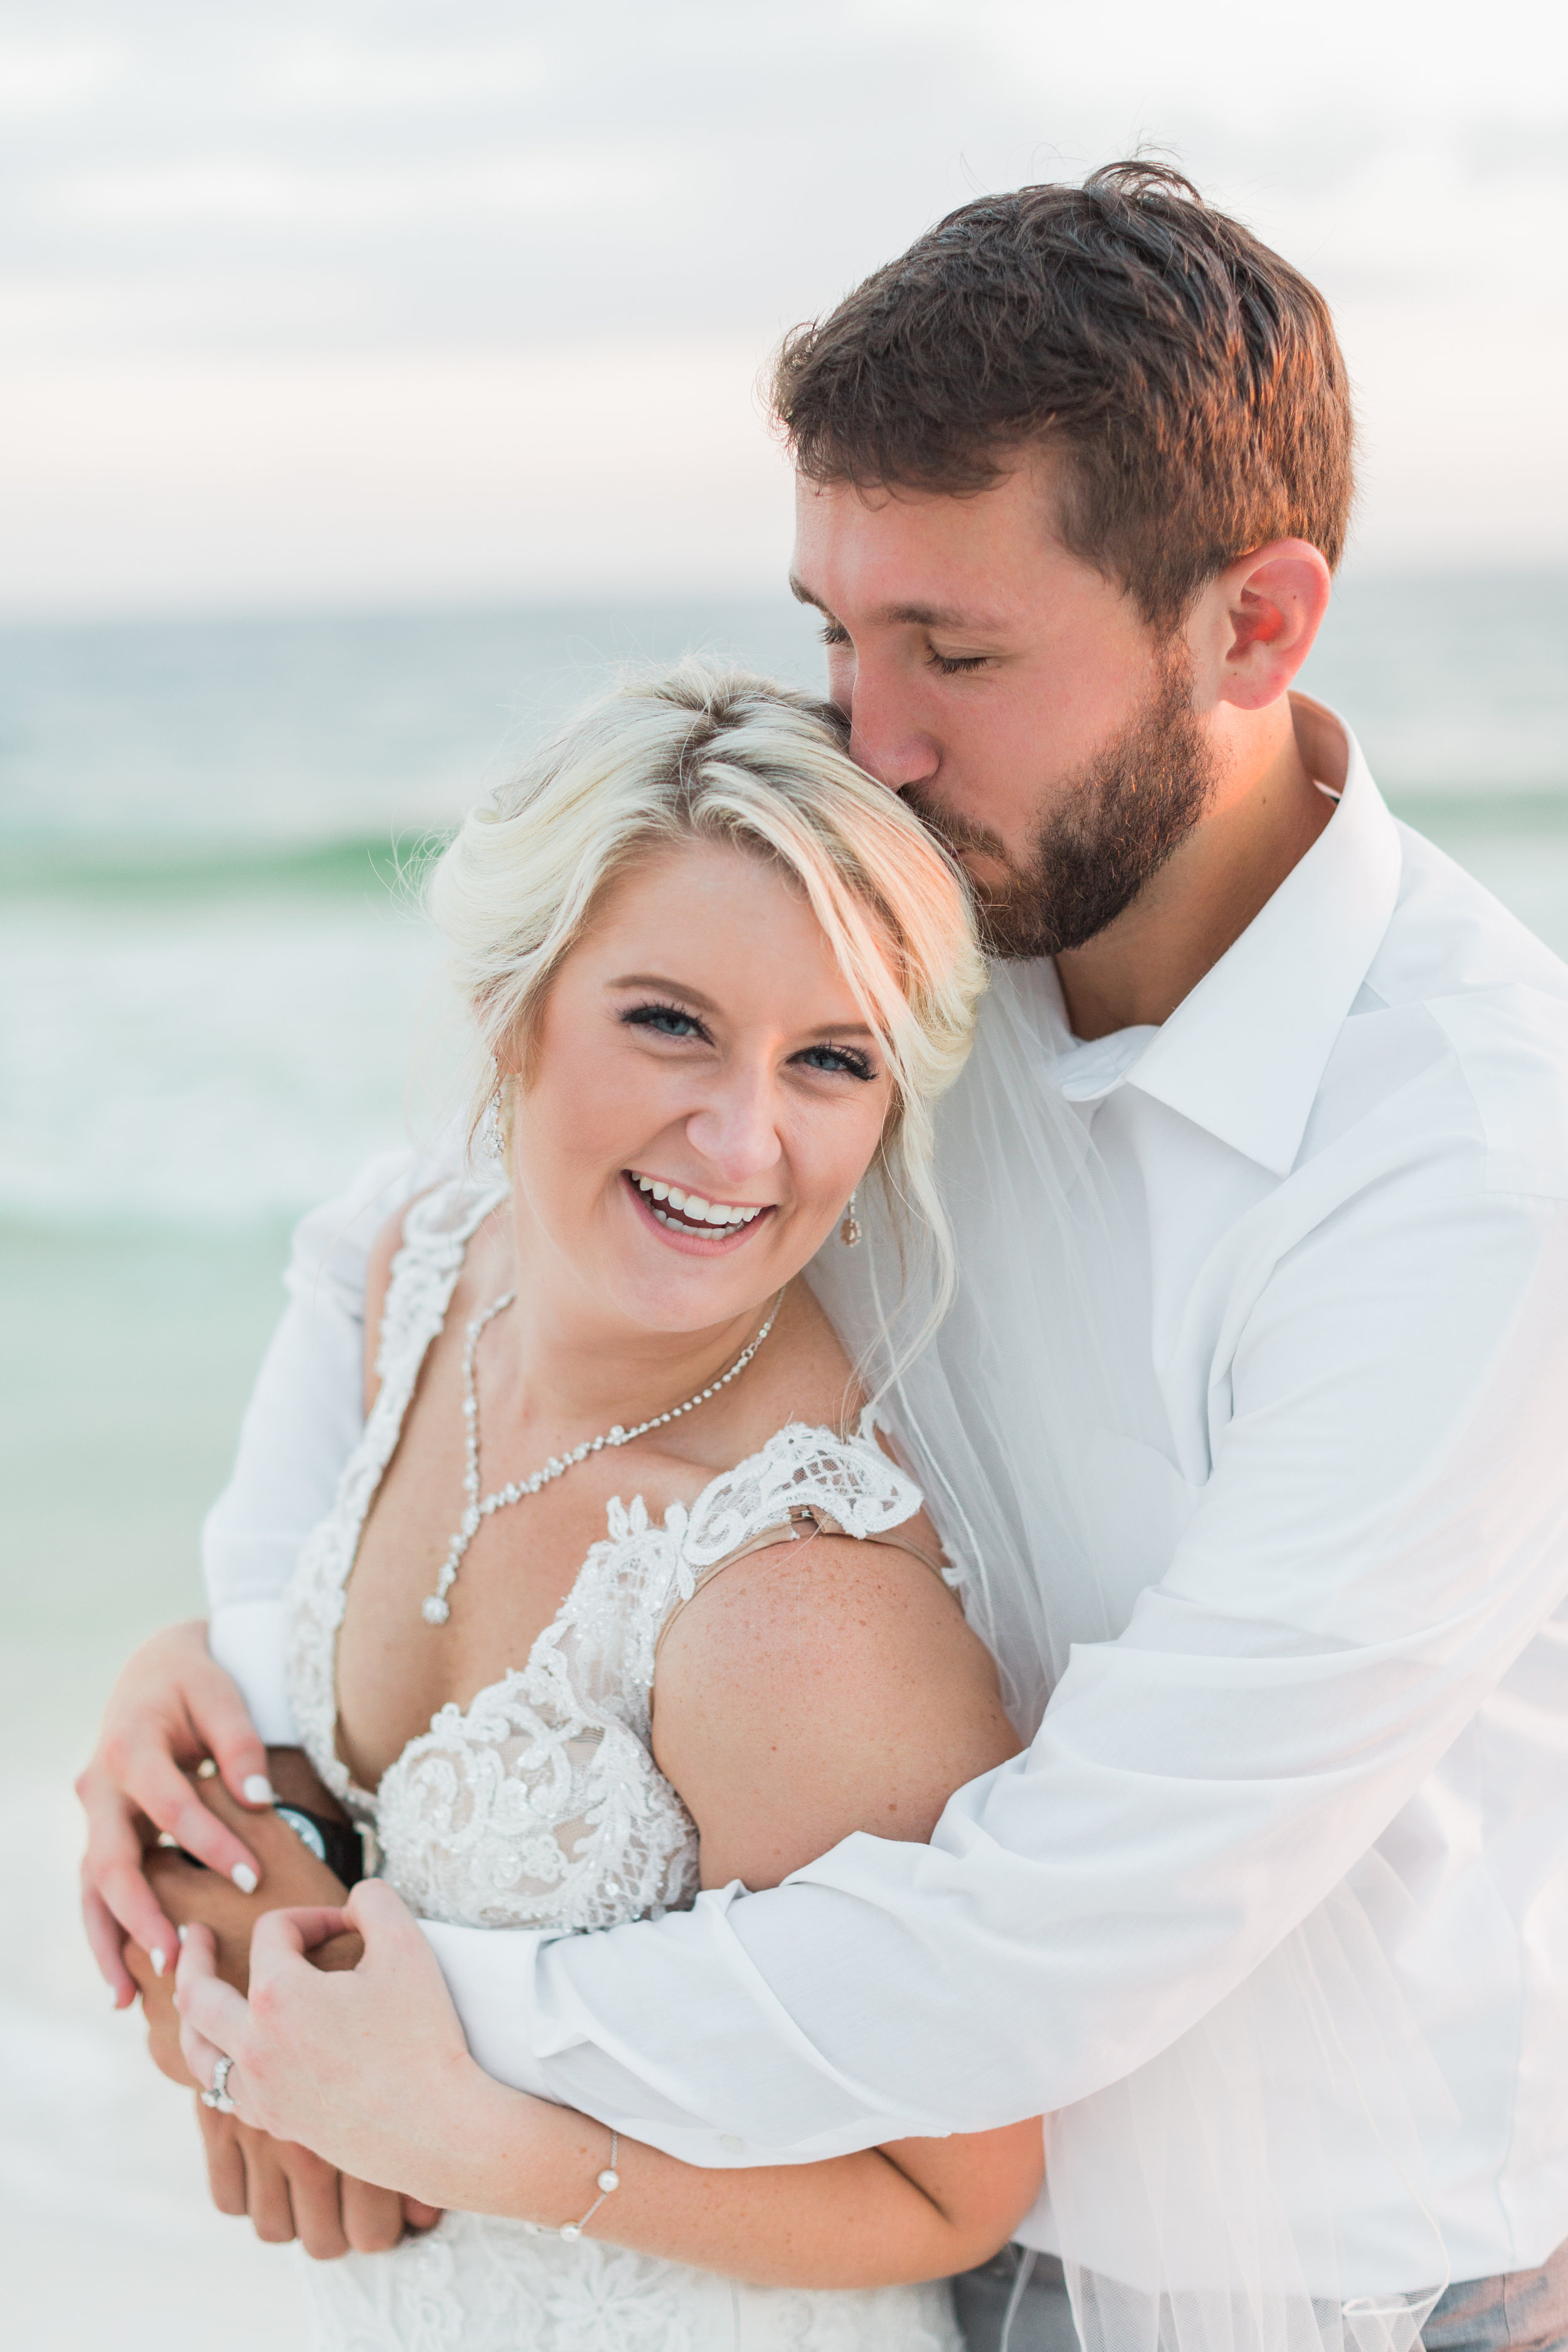 """Hannah was a part of our big day from the very beginning! She was there for when Tyler proposed to me at the airport (my husband is a pilot, so of course he chose to do it there), our beautiful engagement photoshoot at (and in) a waterfall, and our wedding on the beach in Florida. To say she can shoot anywhere and in any kind of weather is an understatement! My husband and I originally planned to get married in April and immediately knew we had to have Hannah for our BIG day. When we had a couple of issues with our wedding venue here in Georgia, we decided to change everything up and get married in October on the beach instead! Knowing that we had already planned on having Hannah for our wedding day, we had no clue if she would have our new wedding date available or if she'd be able to come down to Florida. With so much luck, she and a friend were available that weekend and drove all the way to Miramar, Florida for us! Because Tyler and I planned our wedding from Georgia, we had no clue what to expect for the day of. There were a ton of details that you always dream of being photographed for your big day, and I had no clue as to what to tell Hannah what everything would be like. She was so easy going with the whole day and even got all of the detail pictures I wouldn't have even thought of. Even when I started stressing out about running late (or losing my jewelry), Hannah was so sweet and calming and assured me that everything was going to be alright and we would make it to the wedding. Thank you so much for capturing our most perfect day and all of the big events that led up to it. All of our pictures are so gorgeous and remind me everyday how much love the two of us have for one another. Thank you!""  - Tara"